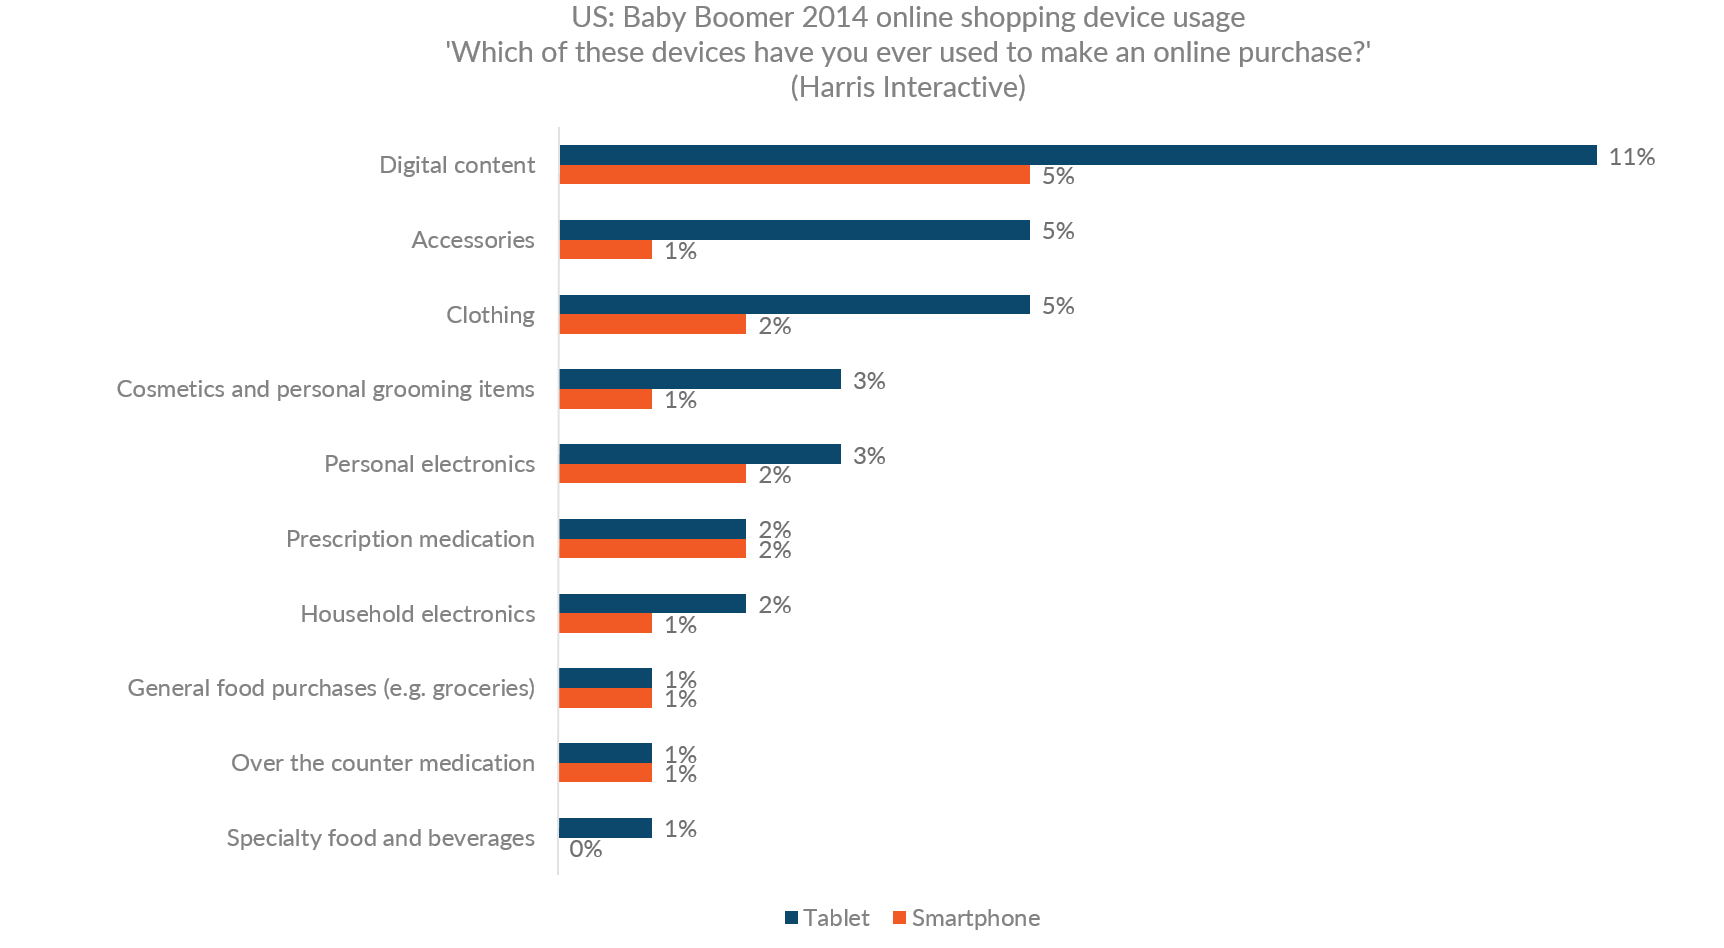 Graph showing the rate for online purchases by device in product categories in the US for people 65 and older Baby Boomers